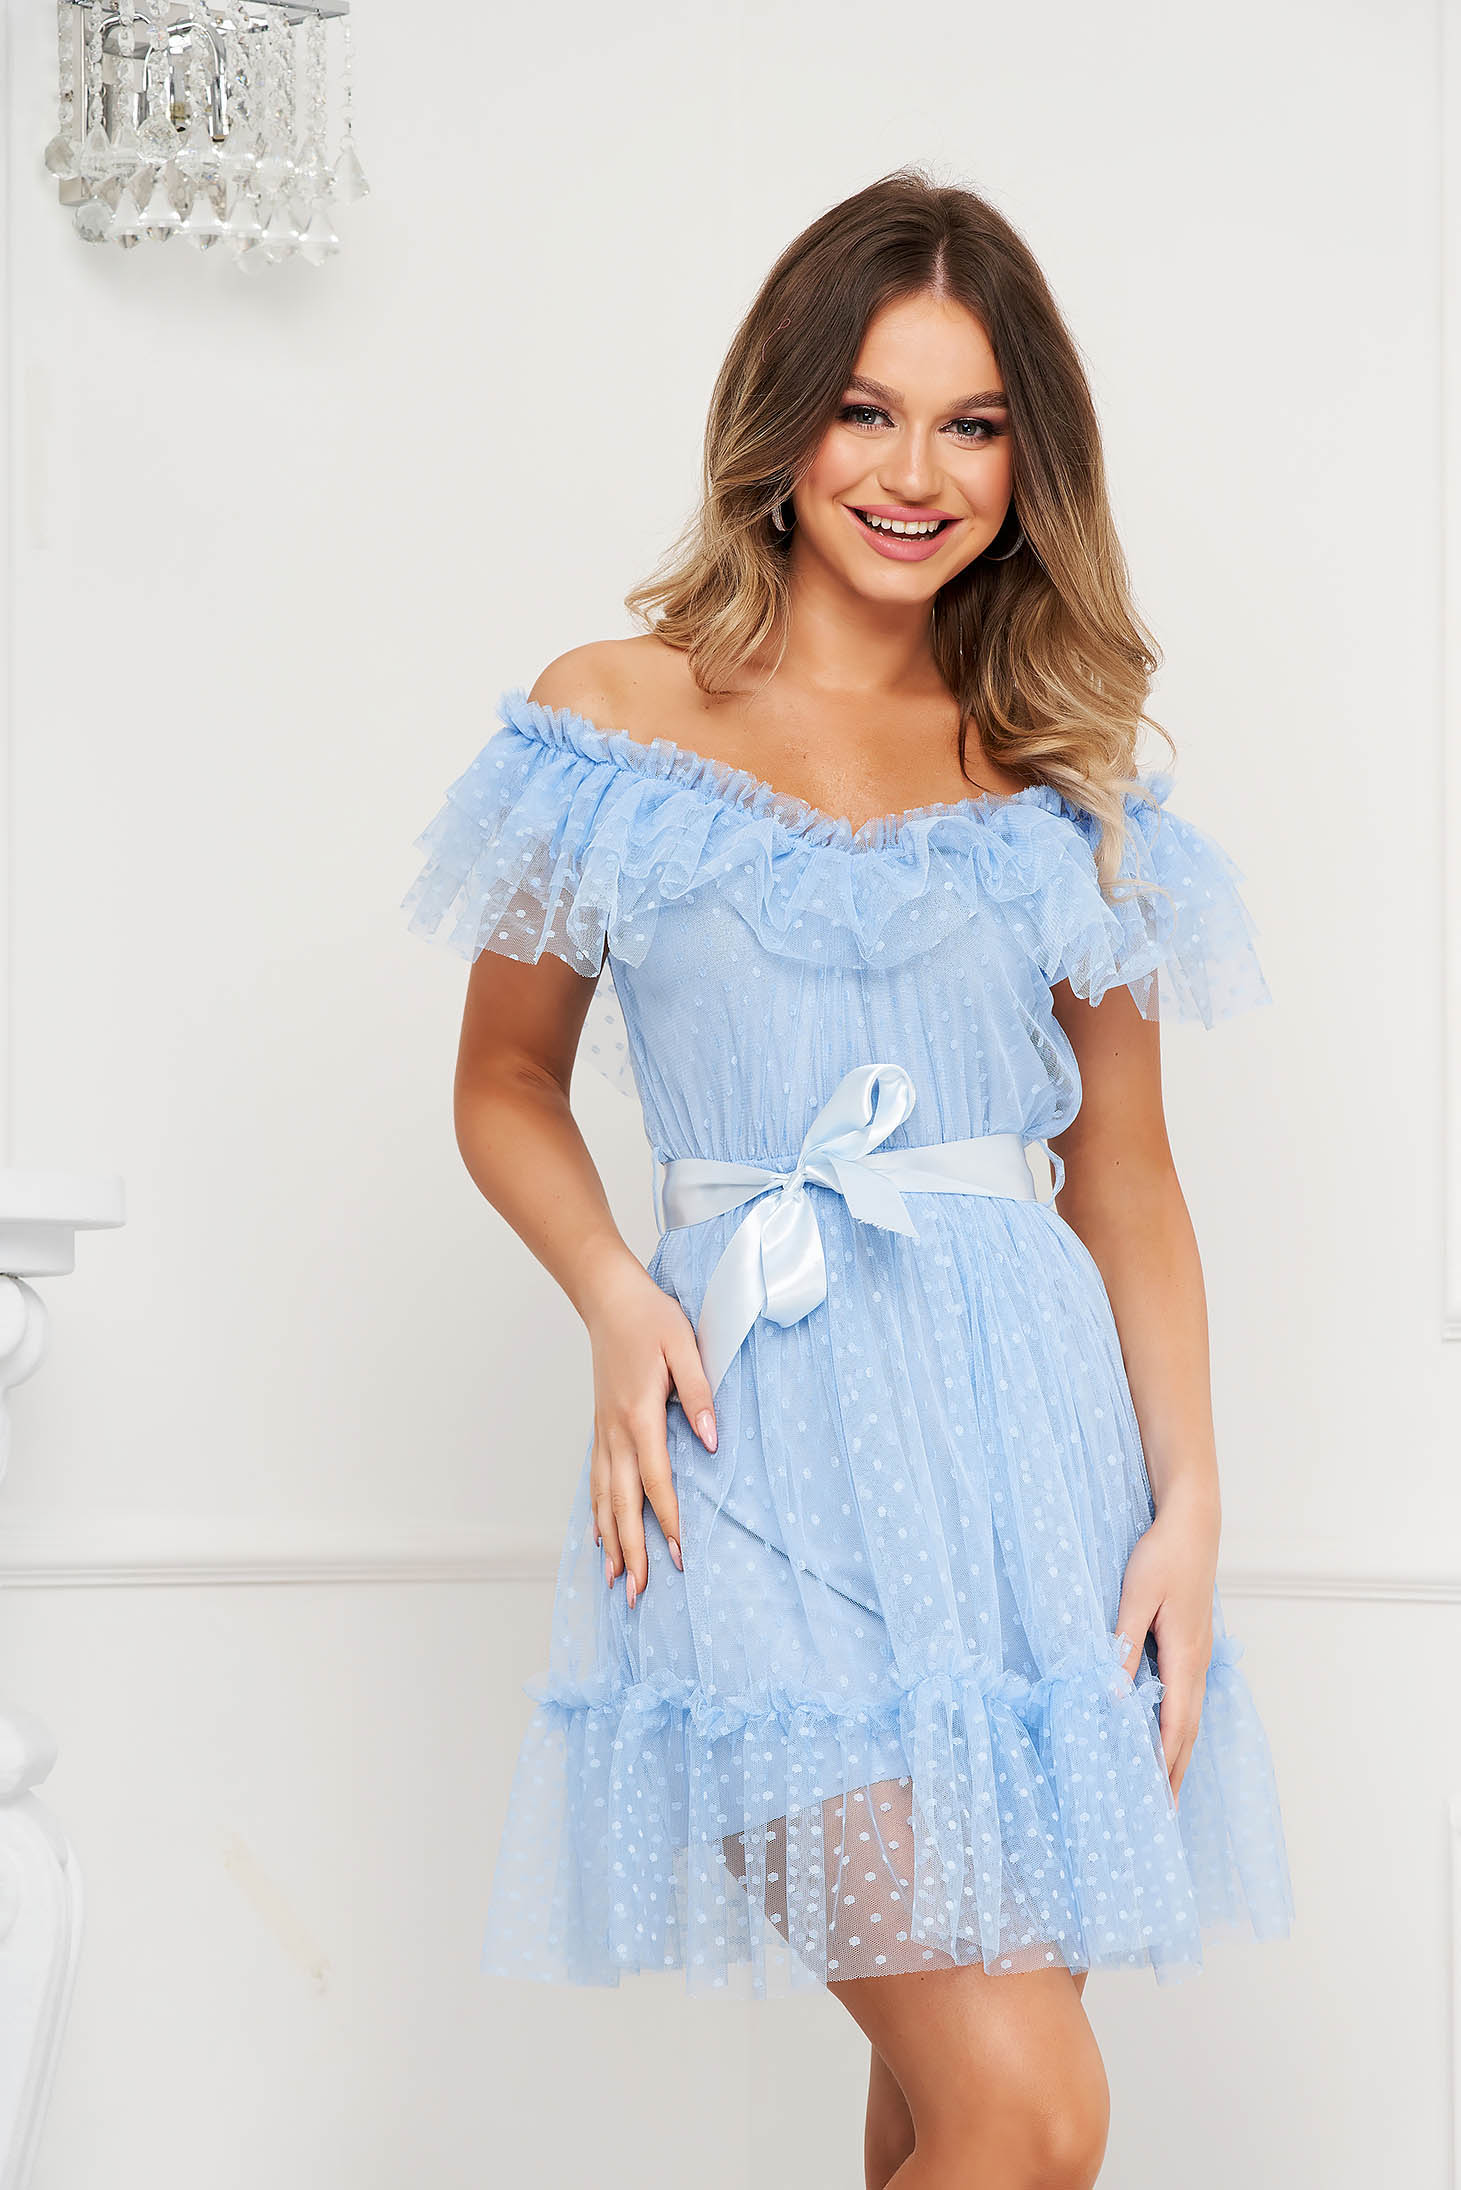 Lightblue dress from tulle cloche with elastic waist plumeti on the shoulders accessorized with tied waistband occasional